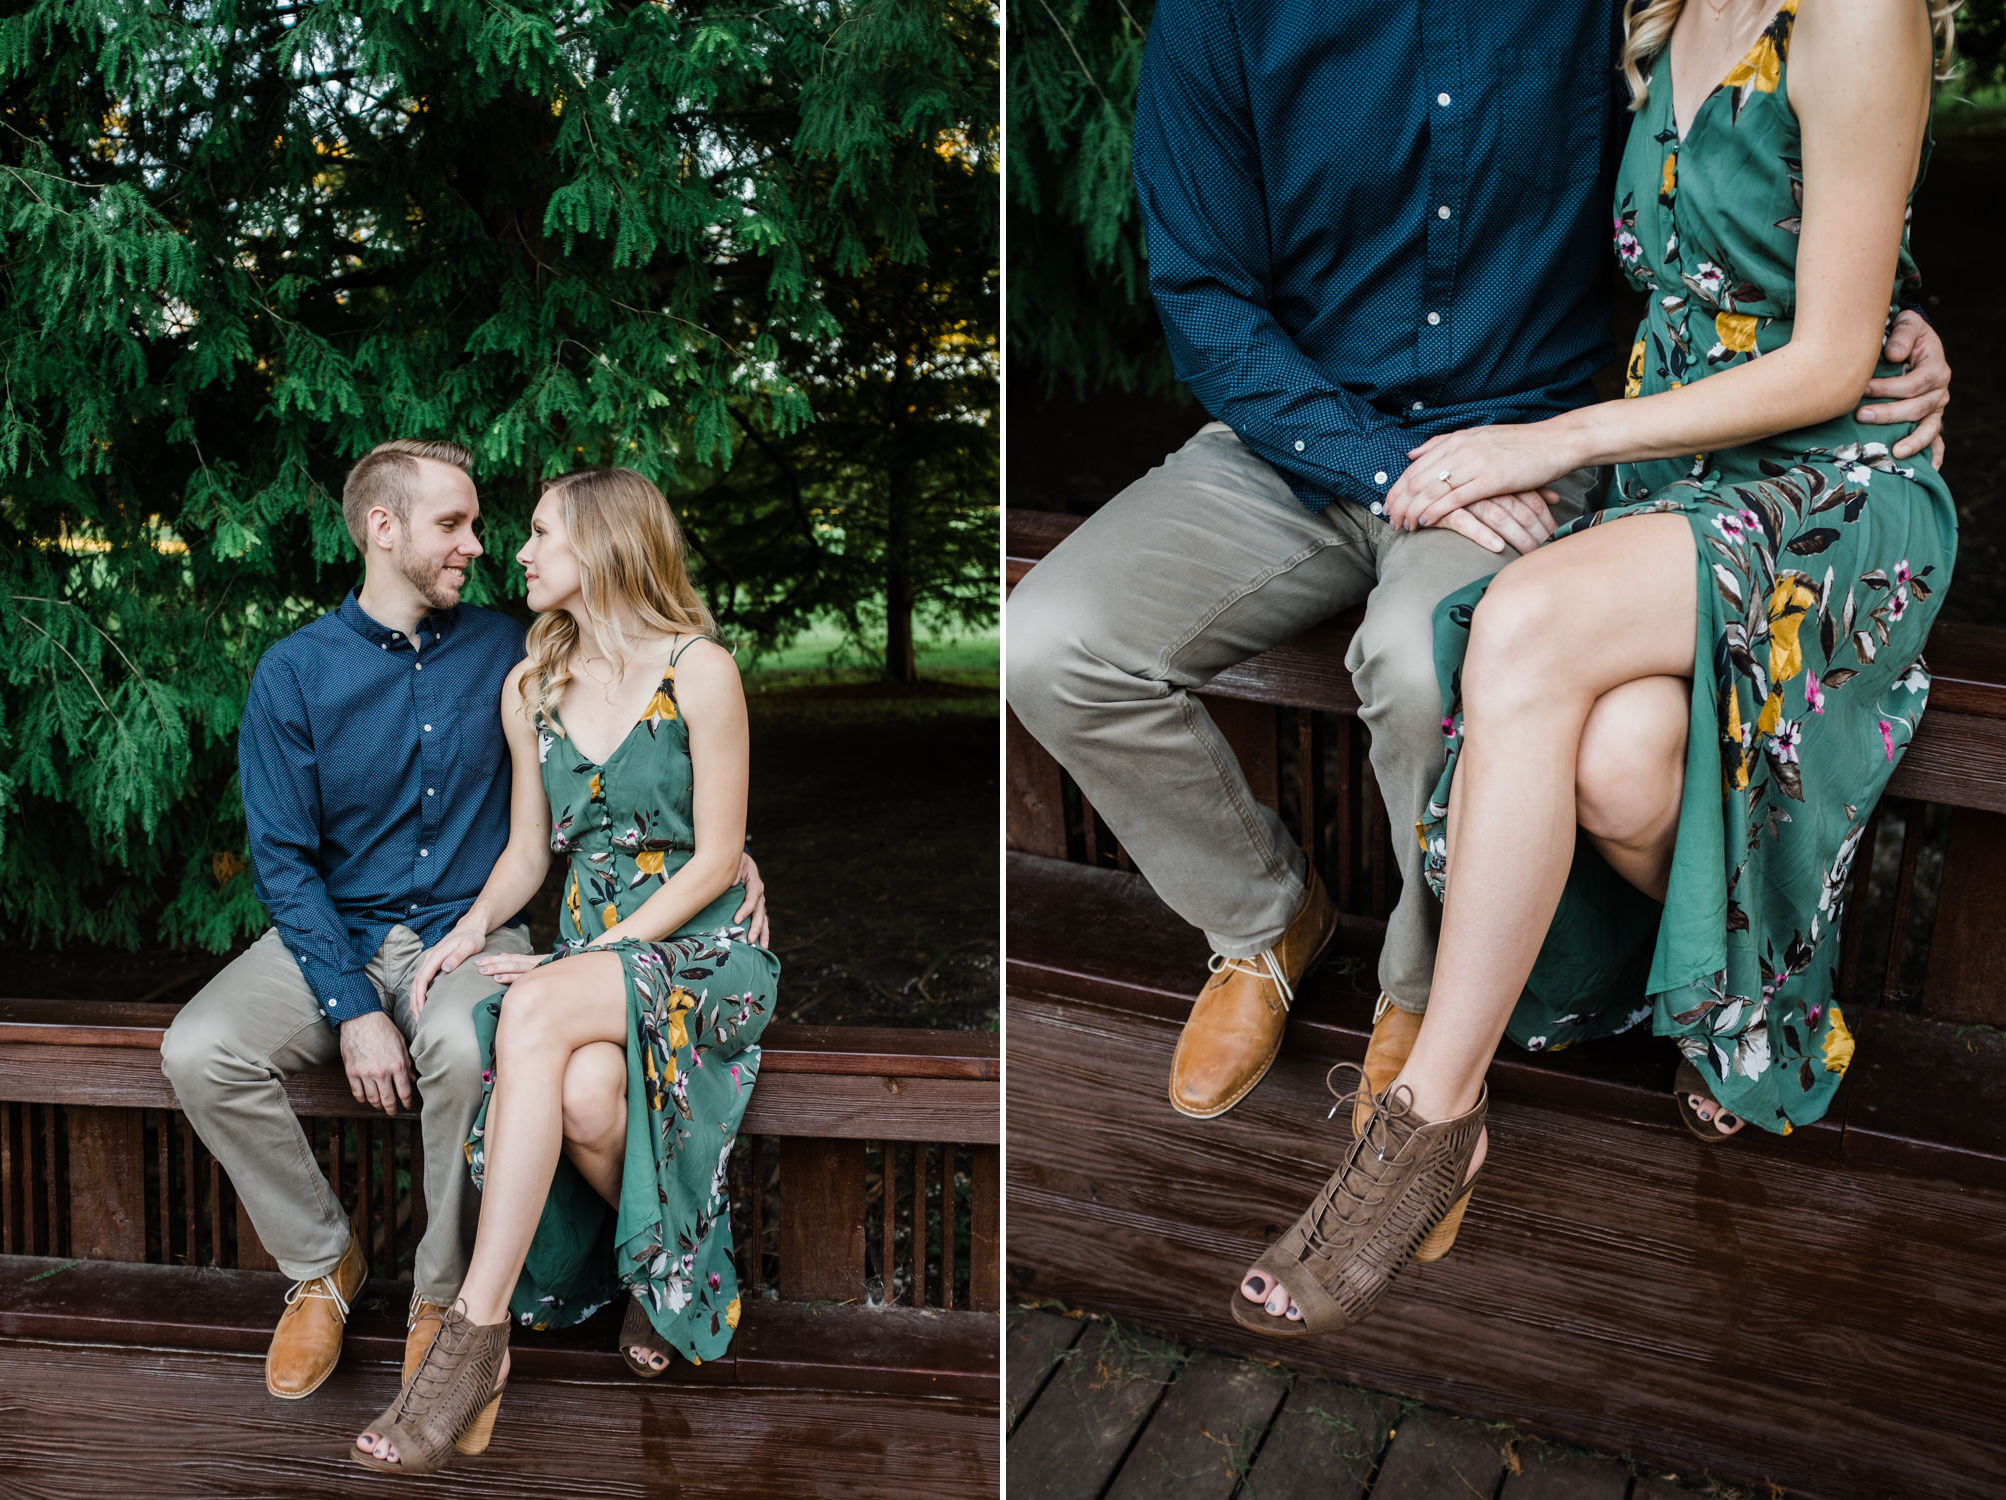 Kansas City Engagement Photographer-Neal Dieker-Kansas City, Kansas-Kansas City, Kansas-Neal Dieker Photography-182.jpg